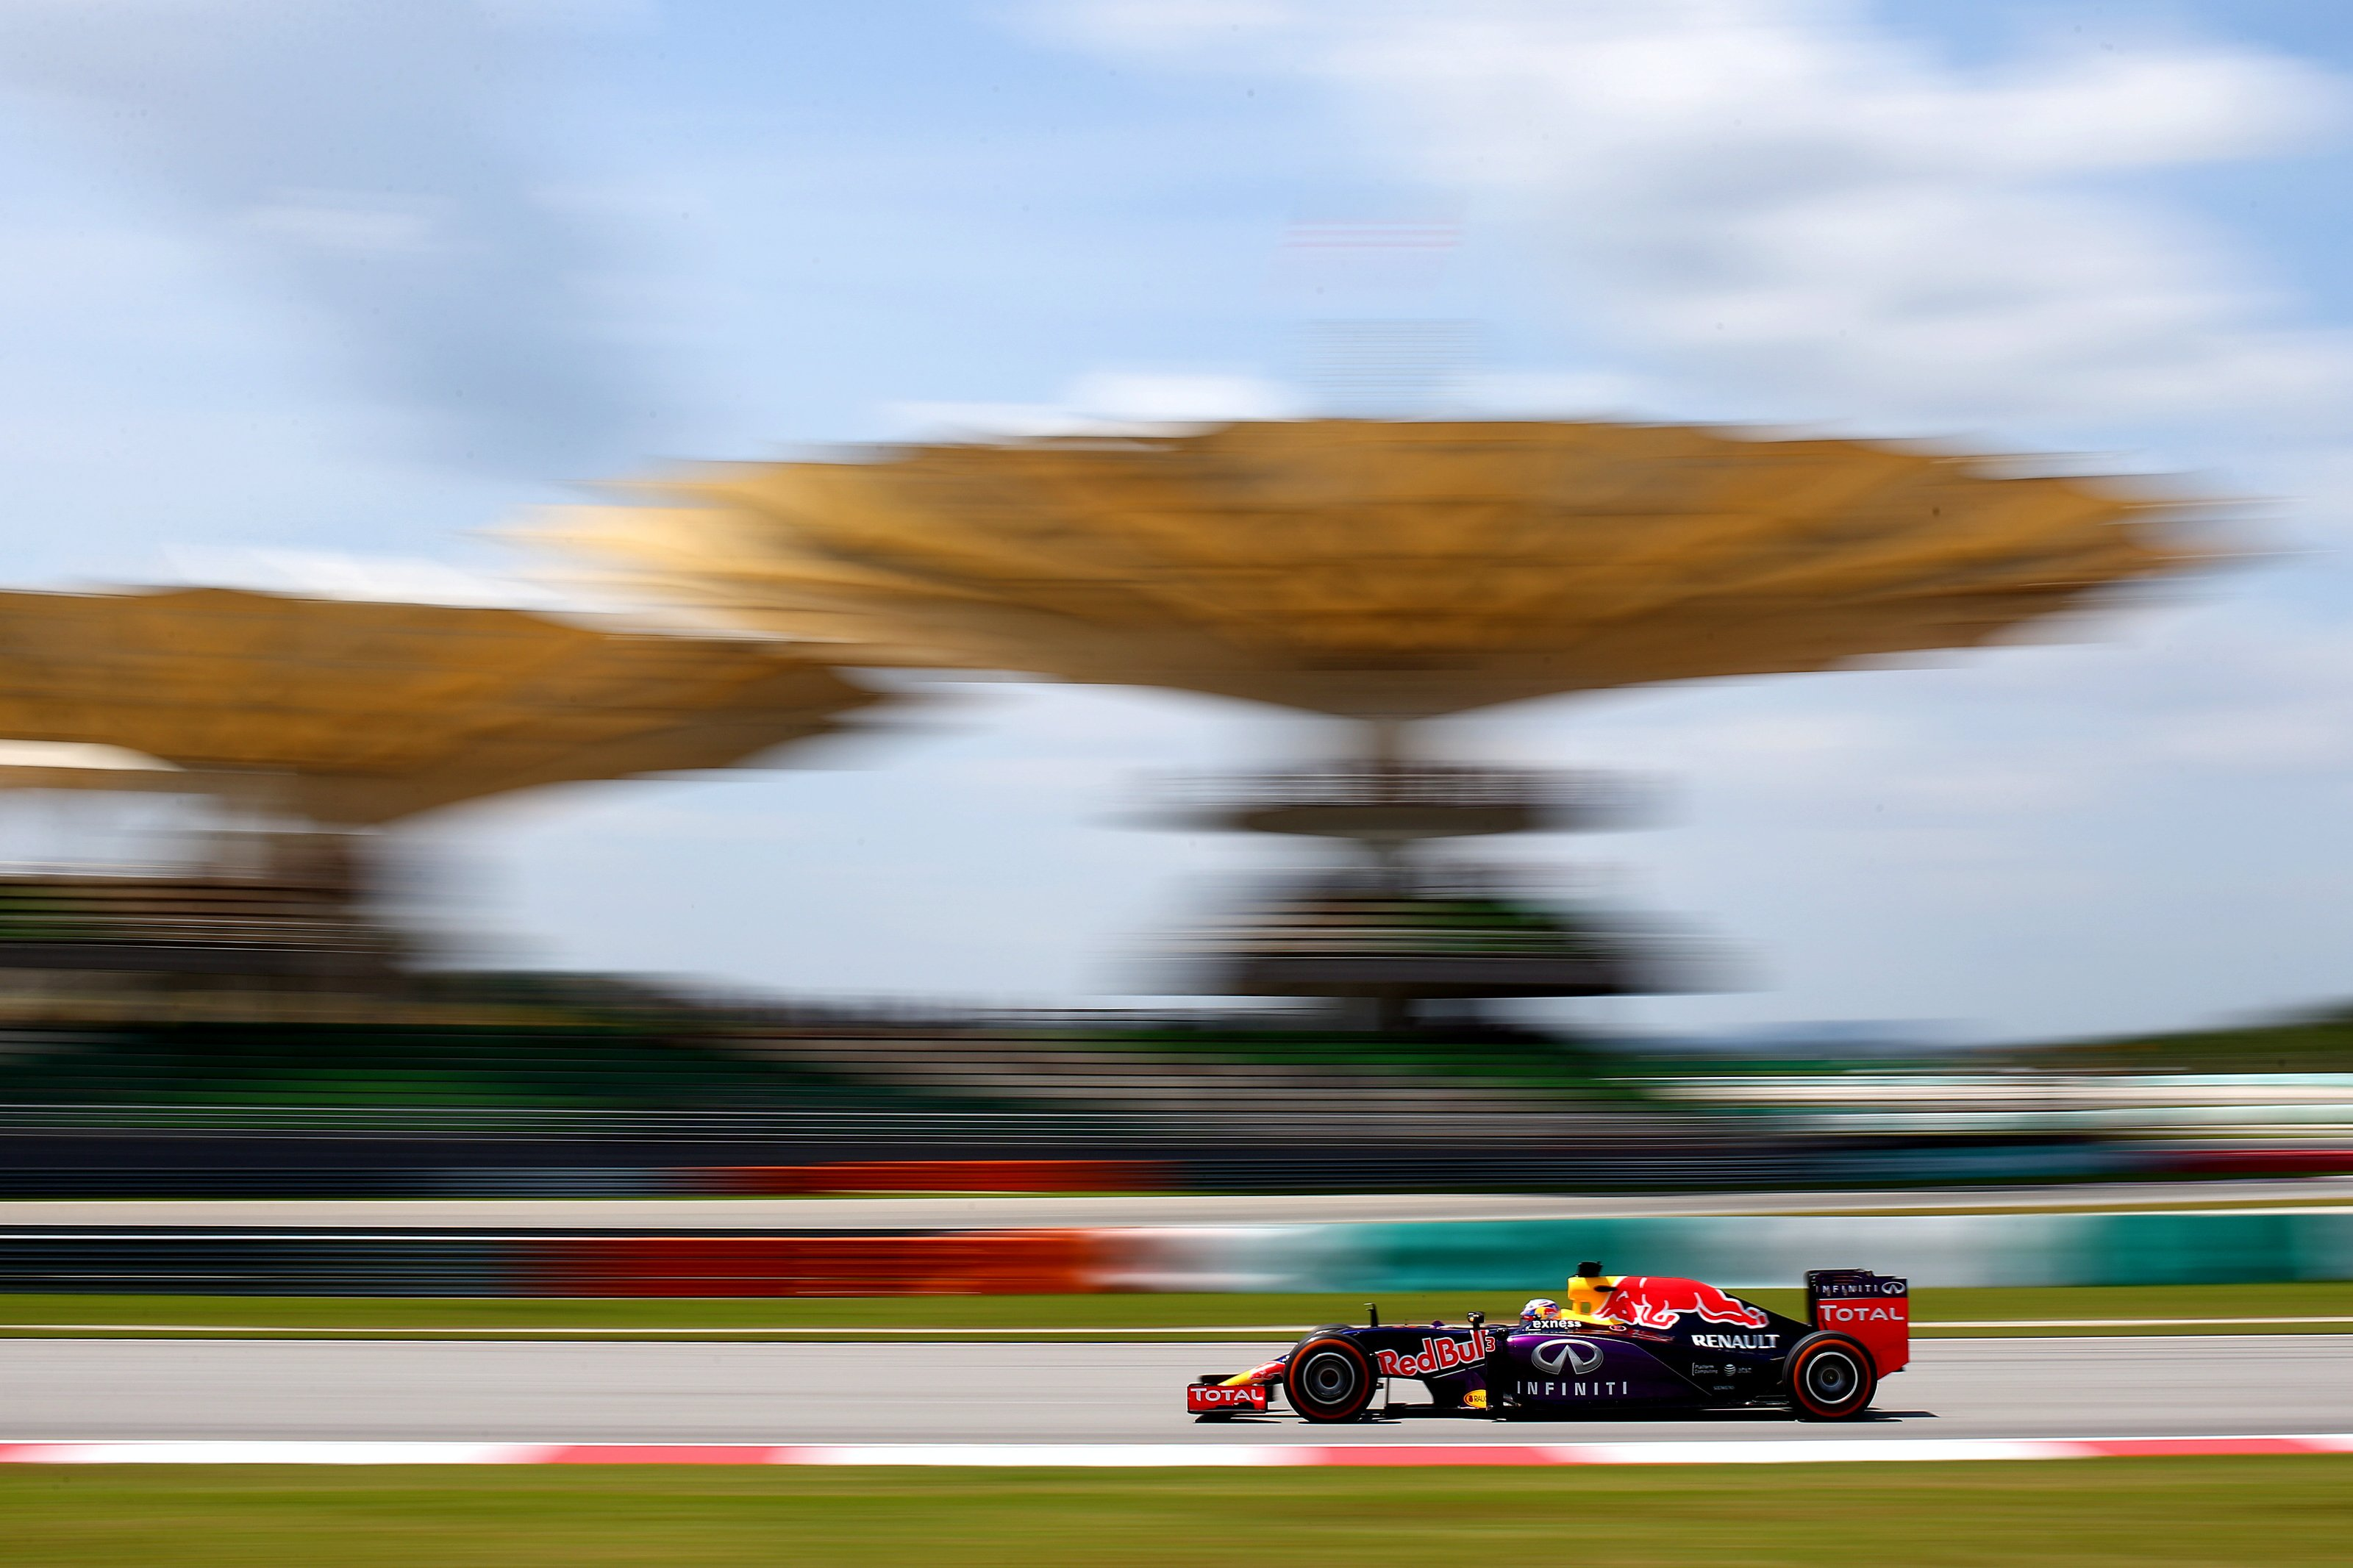 Daniel Ricciardo of RedBull at the Sepang Circuit for the Malaysian GP